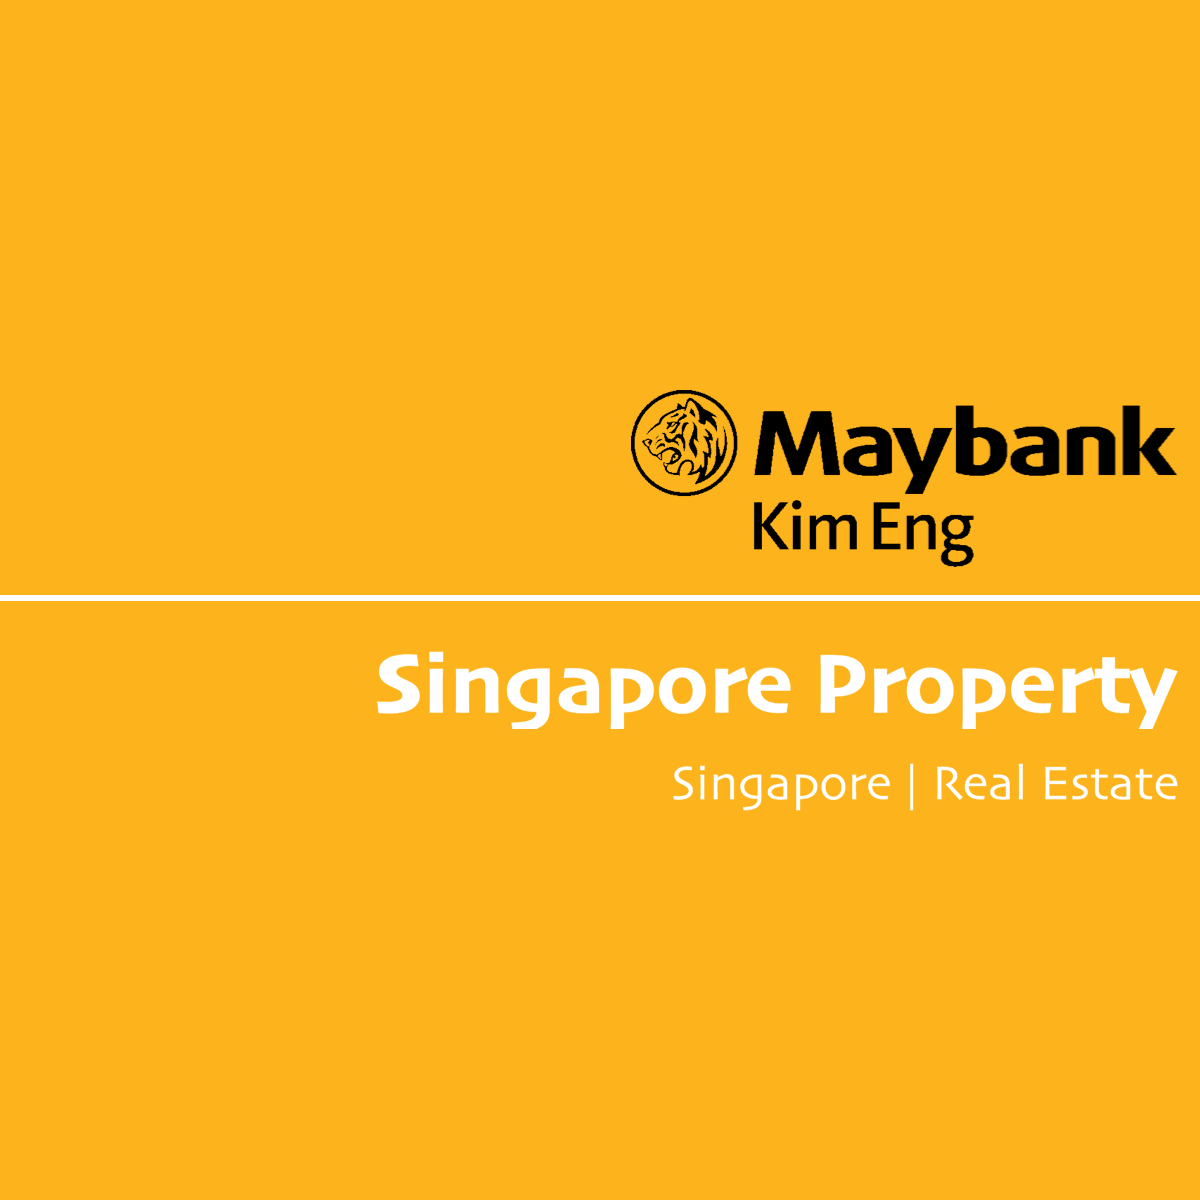 Singapore Property - Maybank Kim Eng 2018-06-18: Buying Opportunity